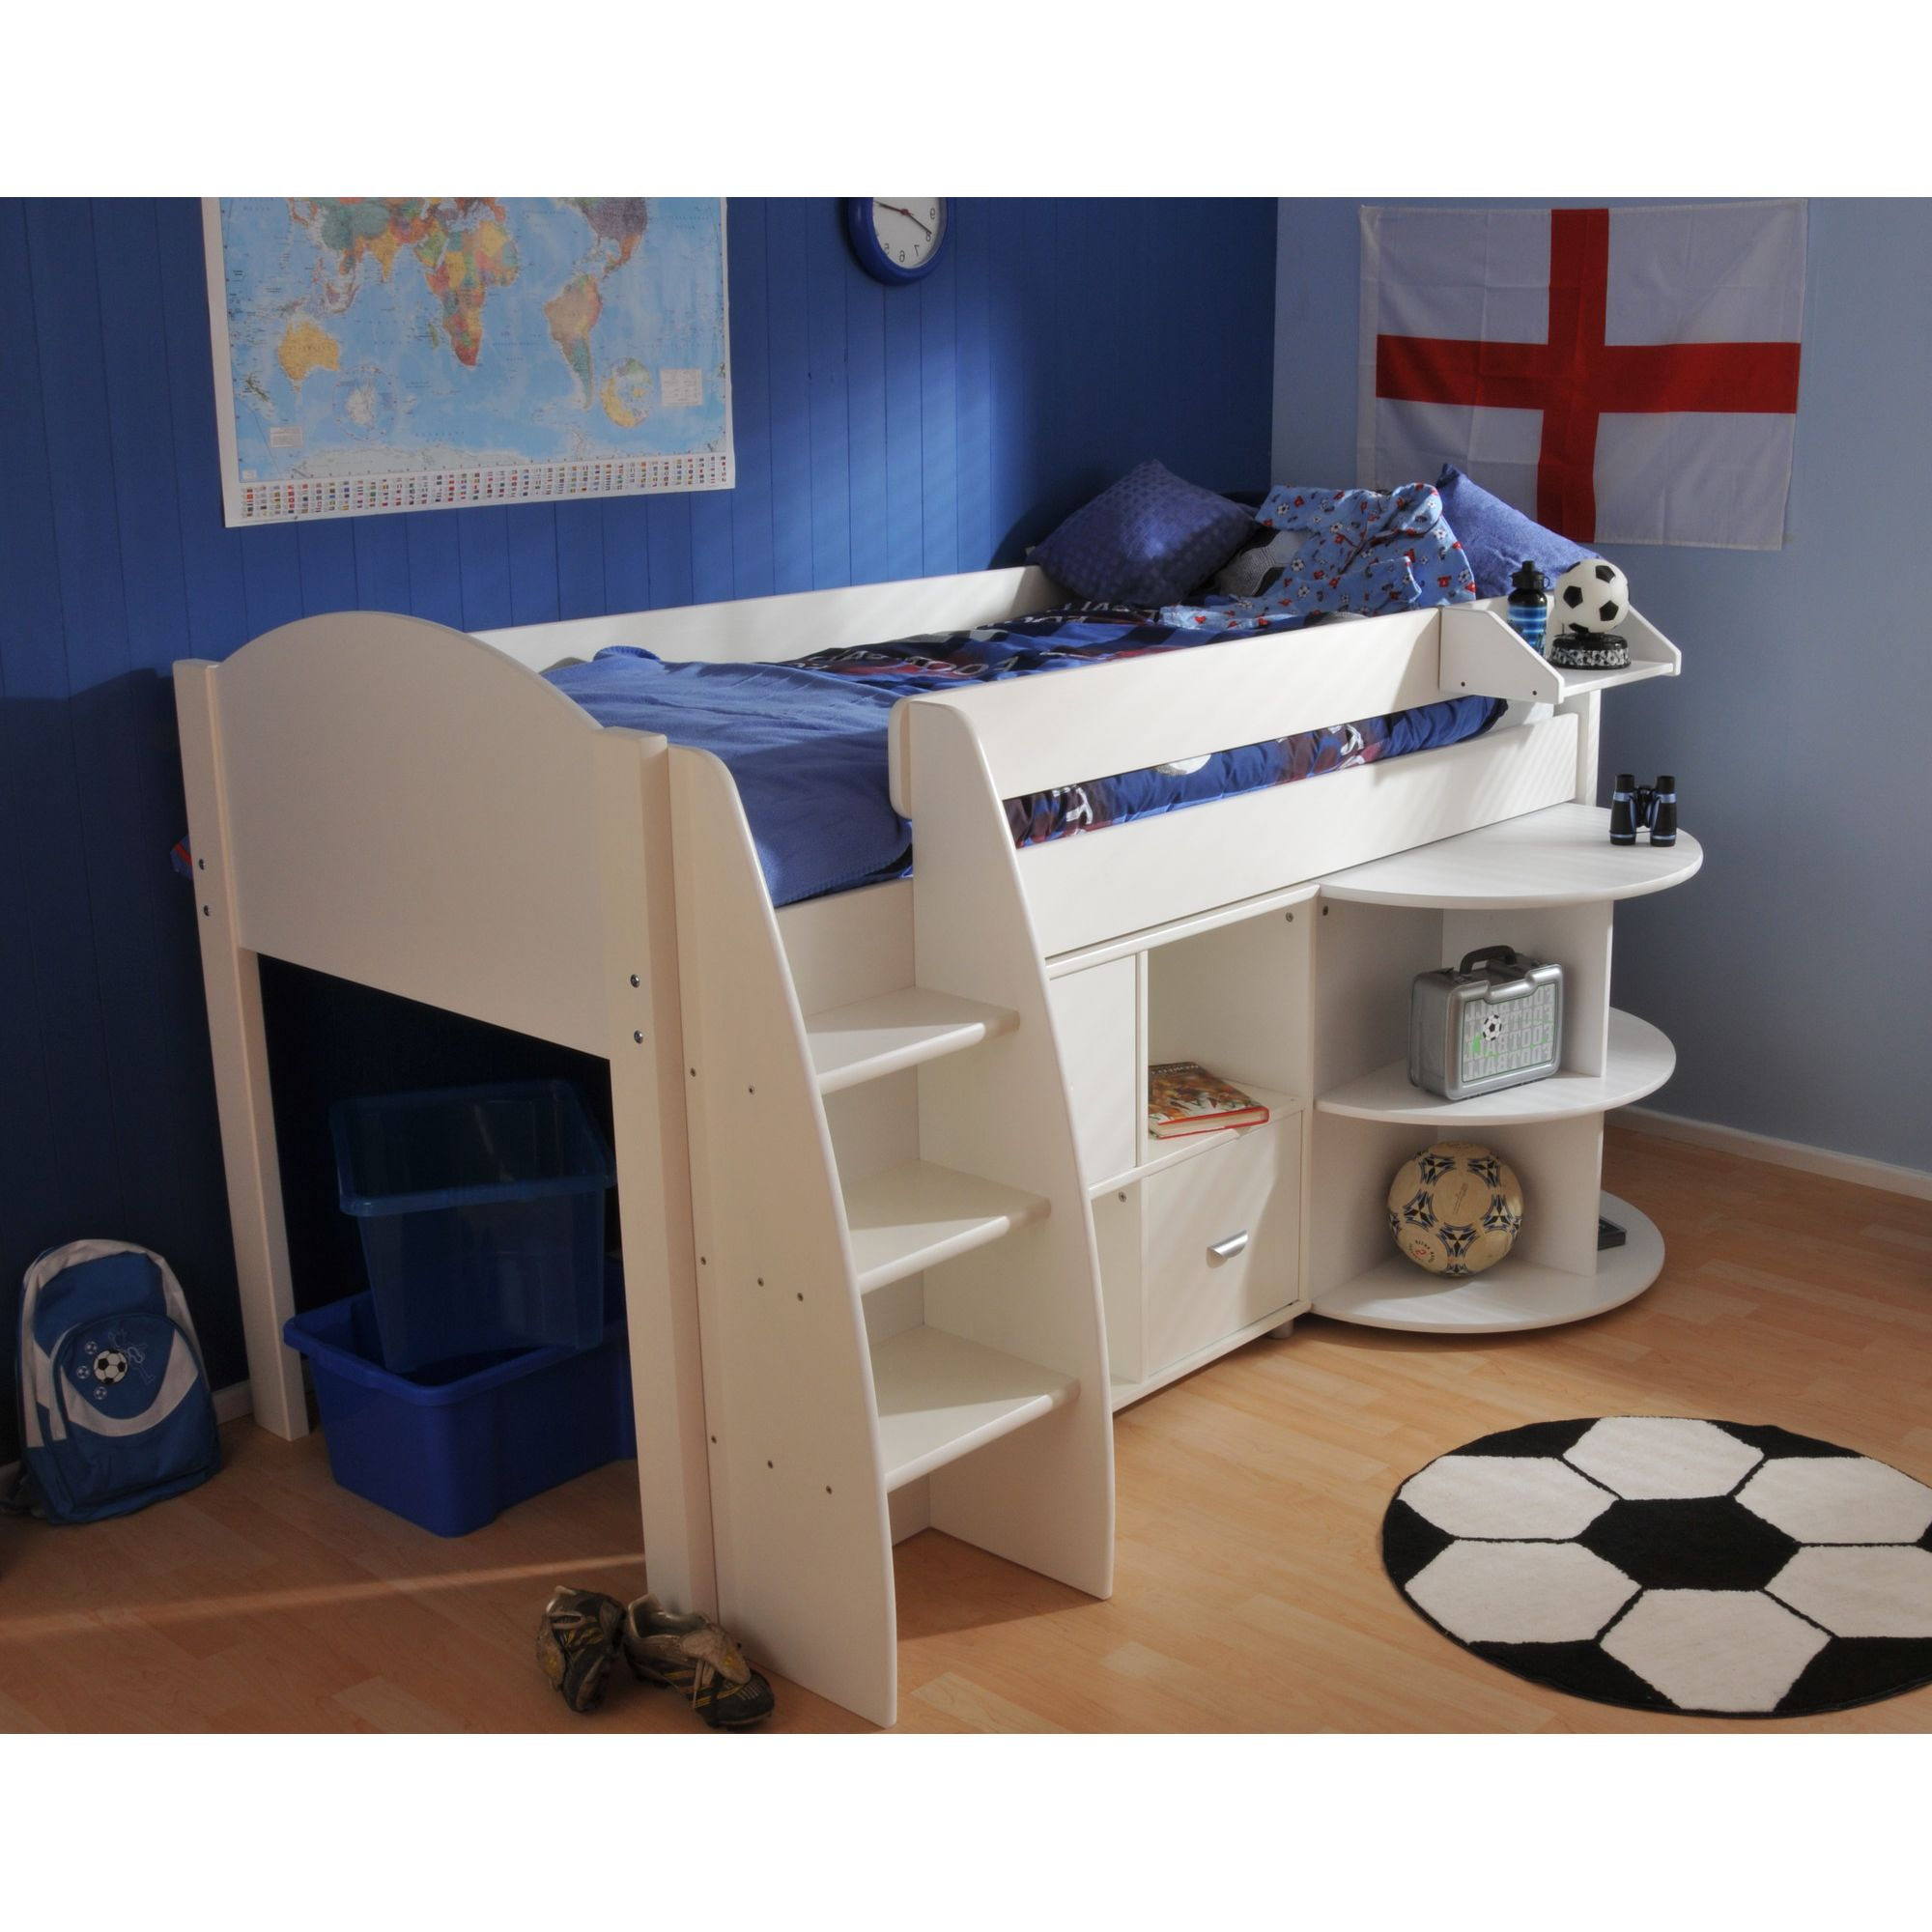 Stompa Rondo Mid Sleeper with Cube Unit and Extending Desk - Lilac - White at Tescos Direct